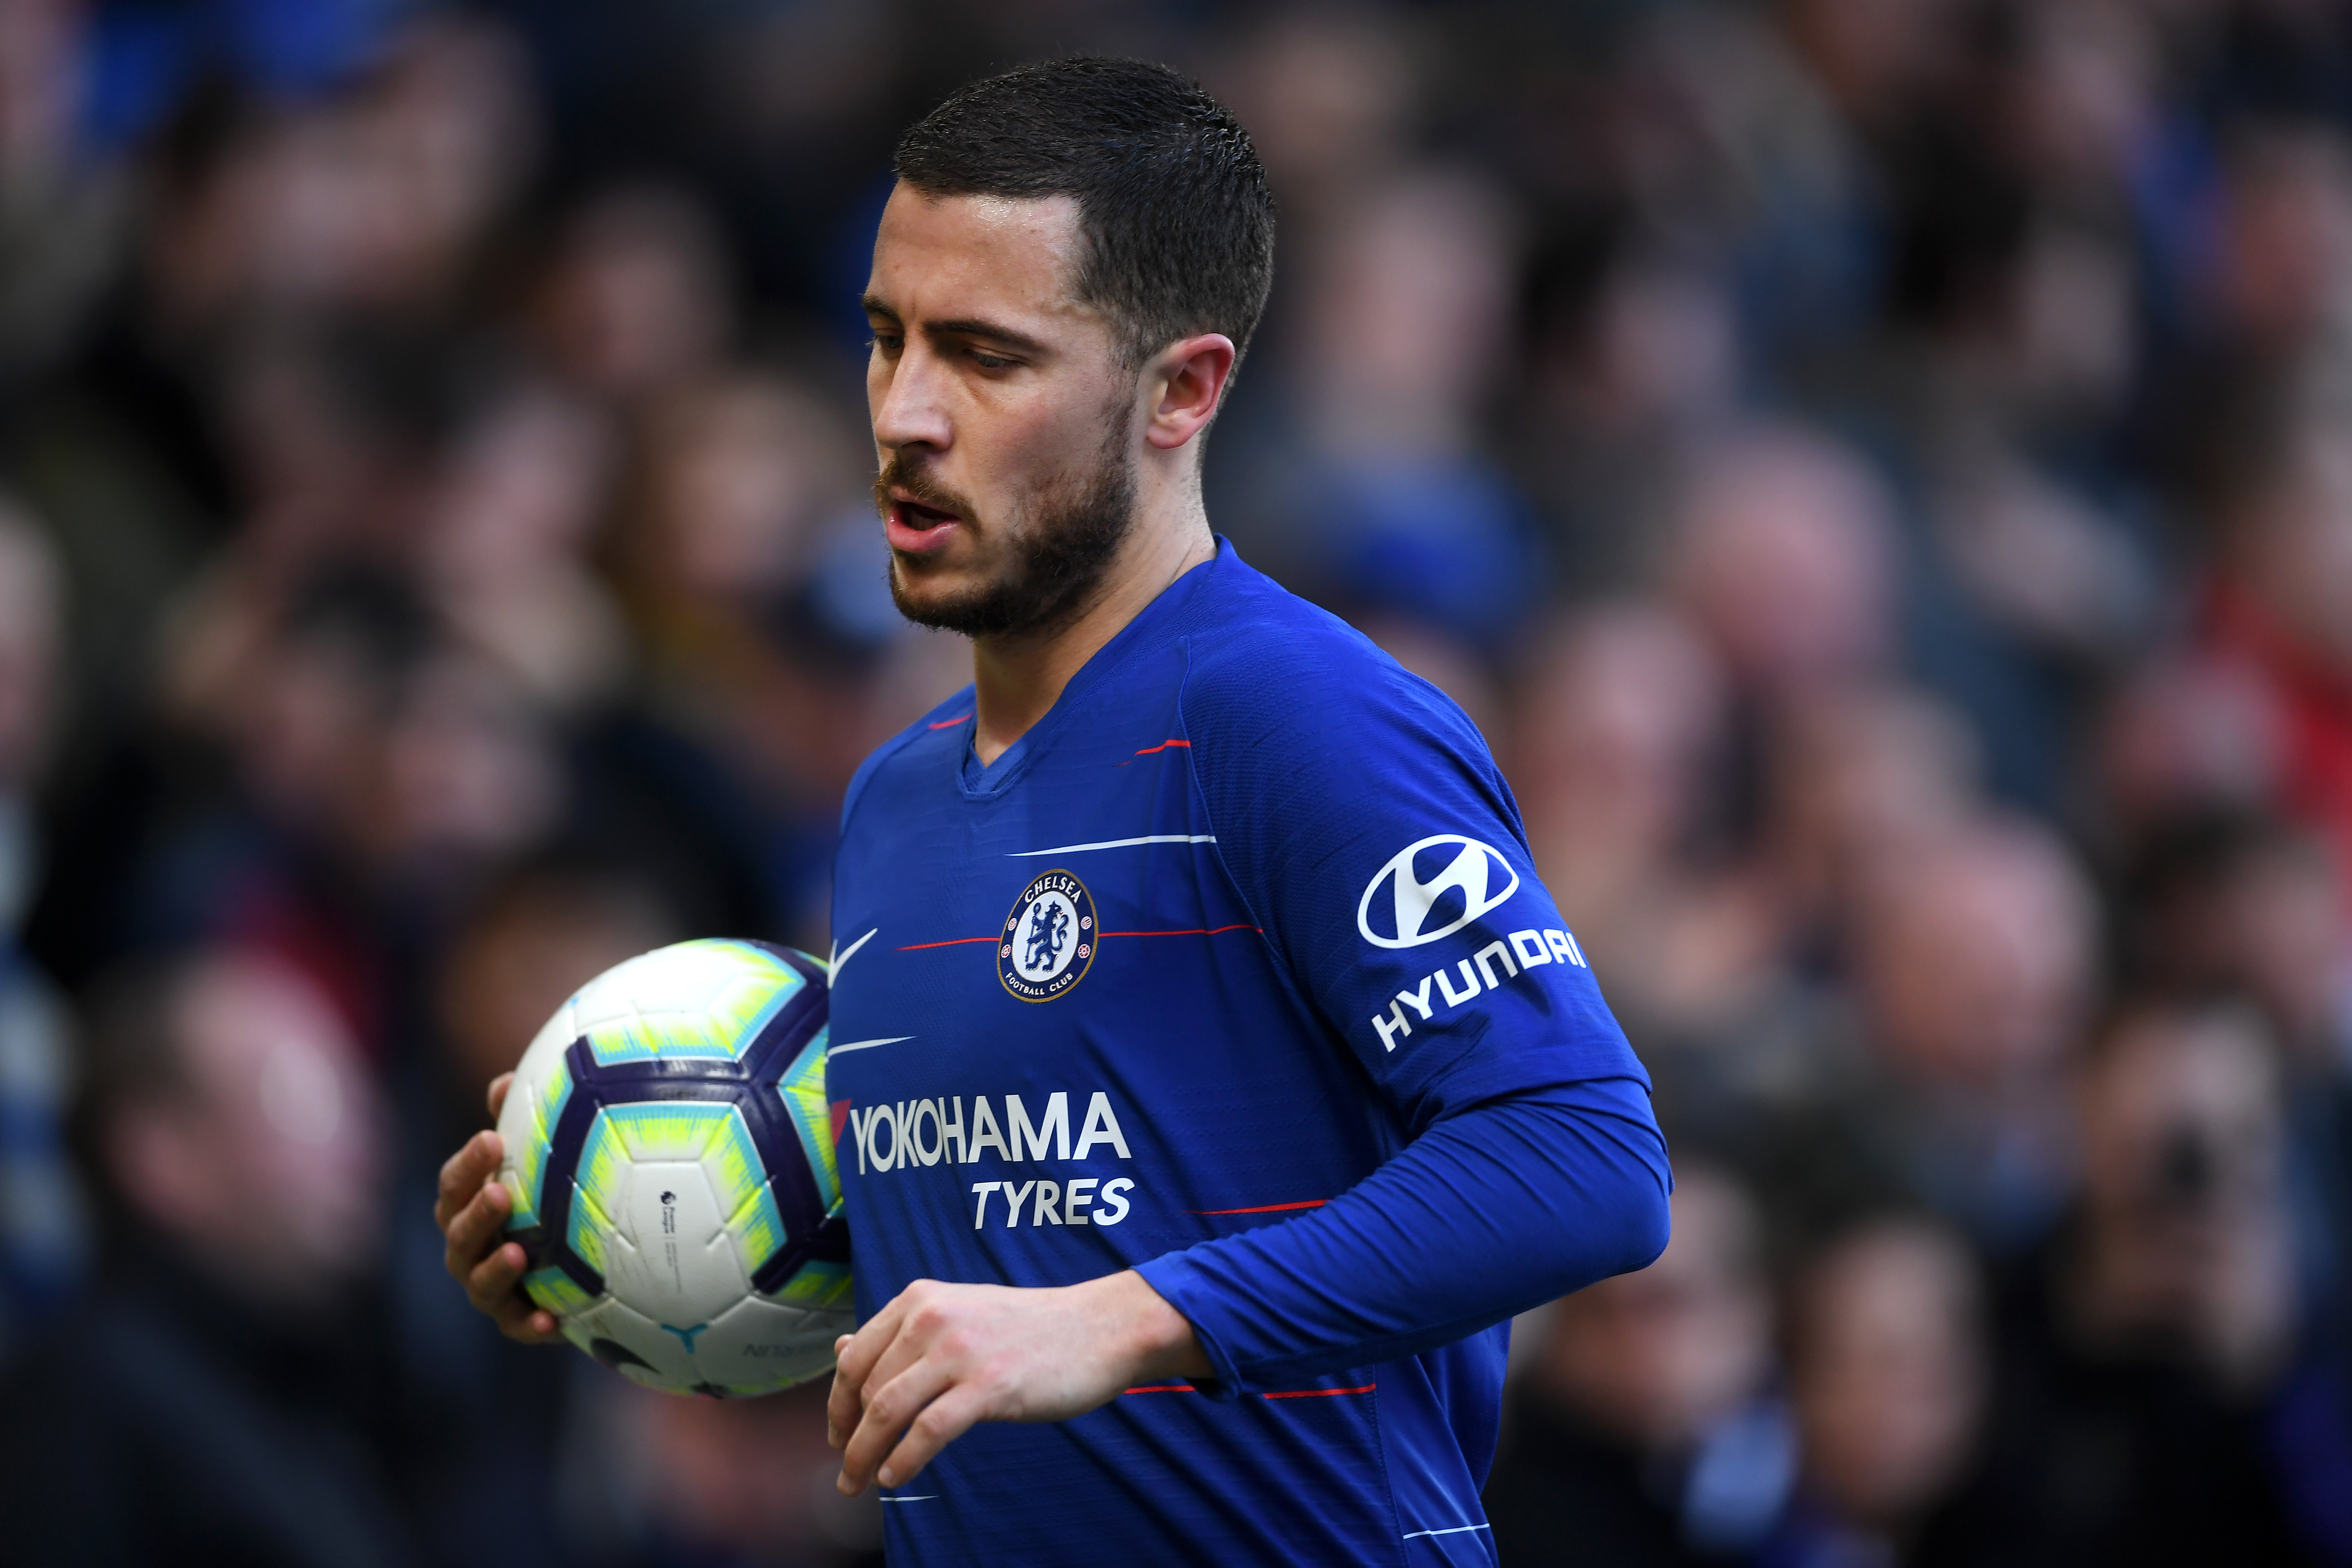 All Chelsea transfer plans other than Hazard sale 'on hold' pending FIFA decision — reports